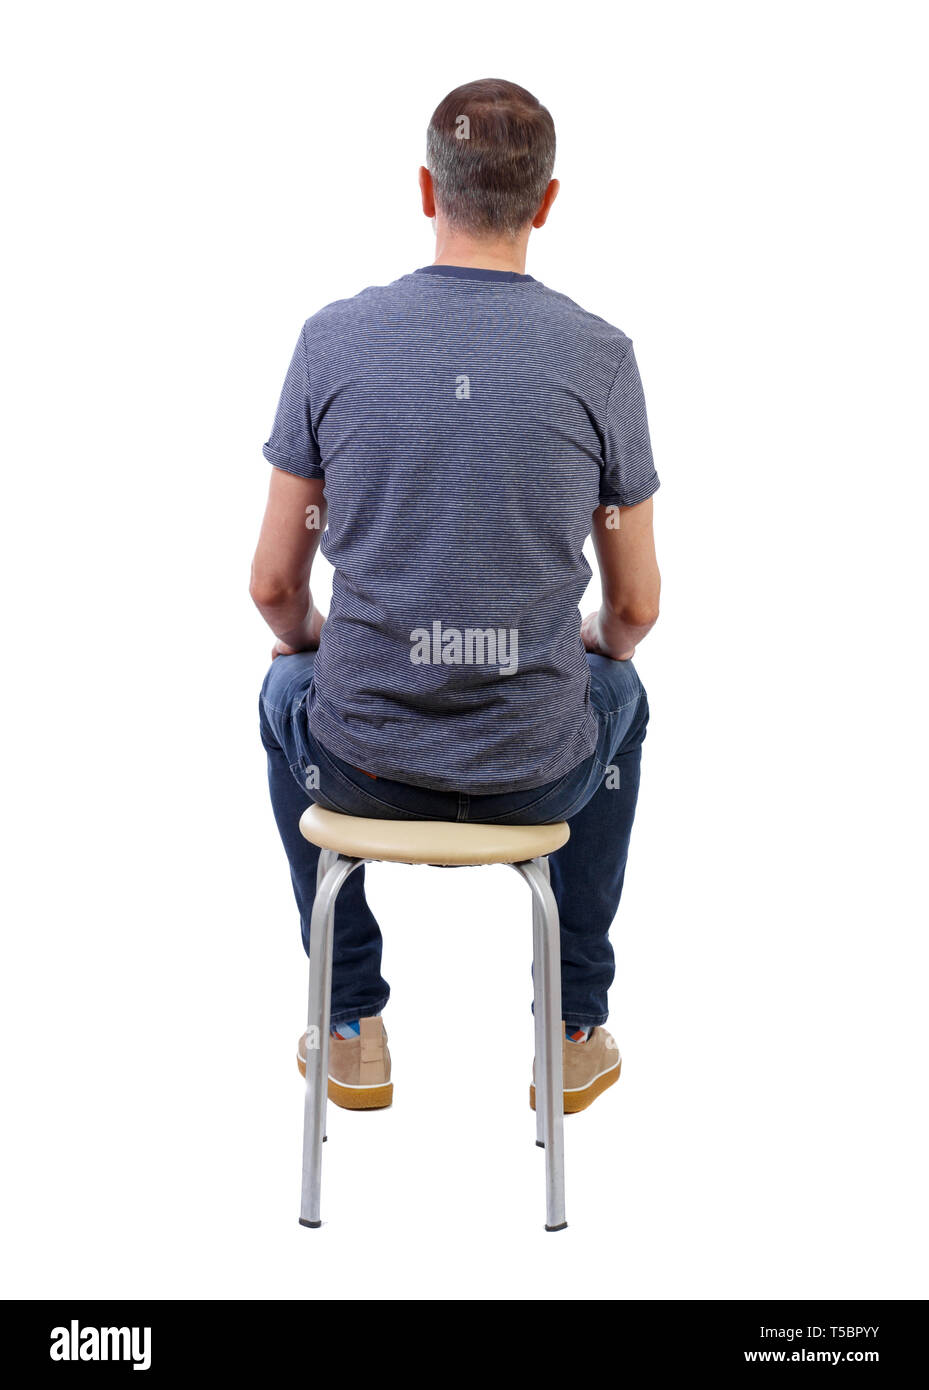 Wondrous Back View Of A Man Sitting On A Chair Rear View People Uwap Interior Chair Design Uwaporg